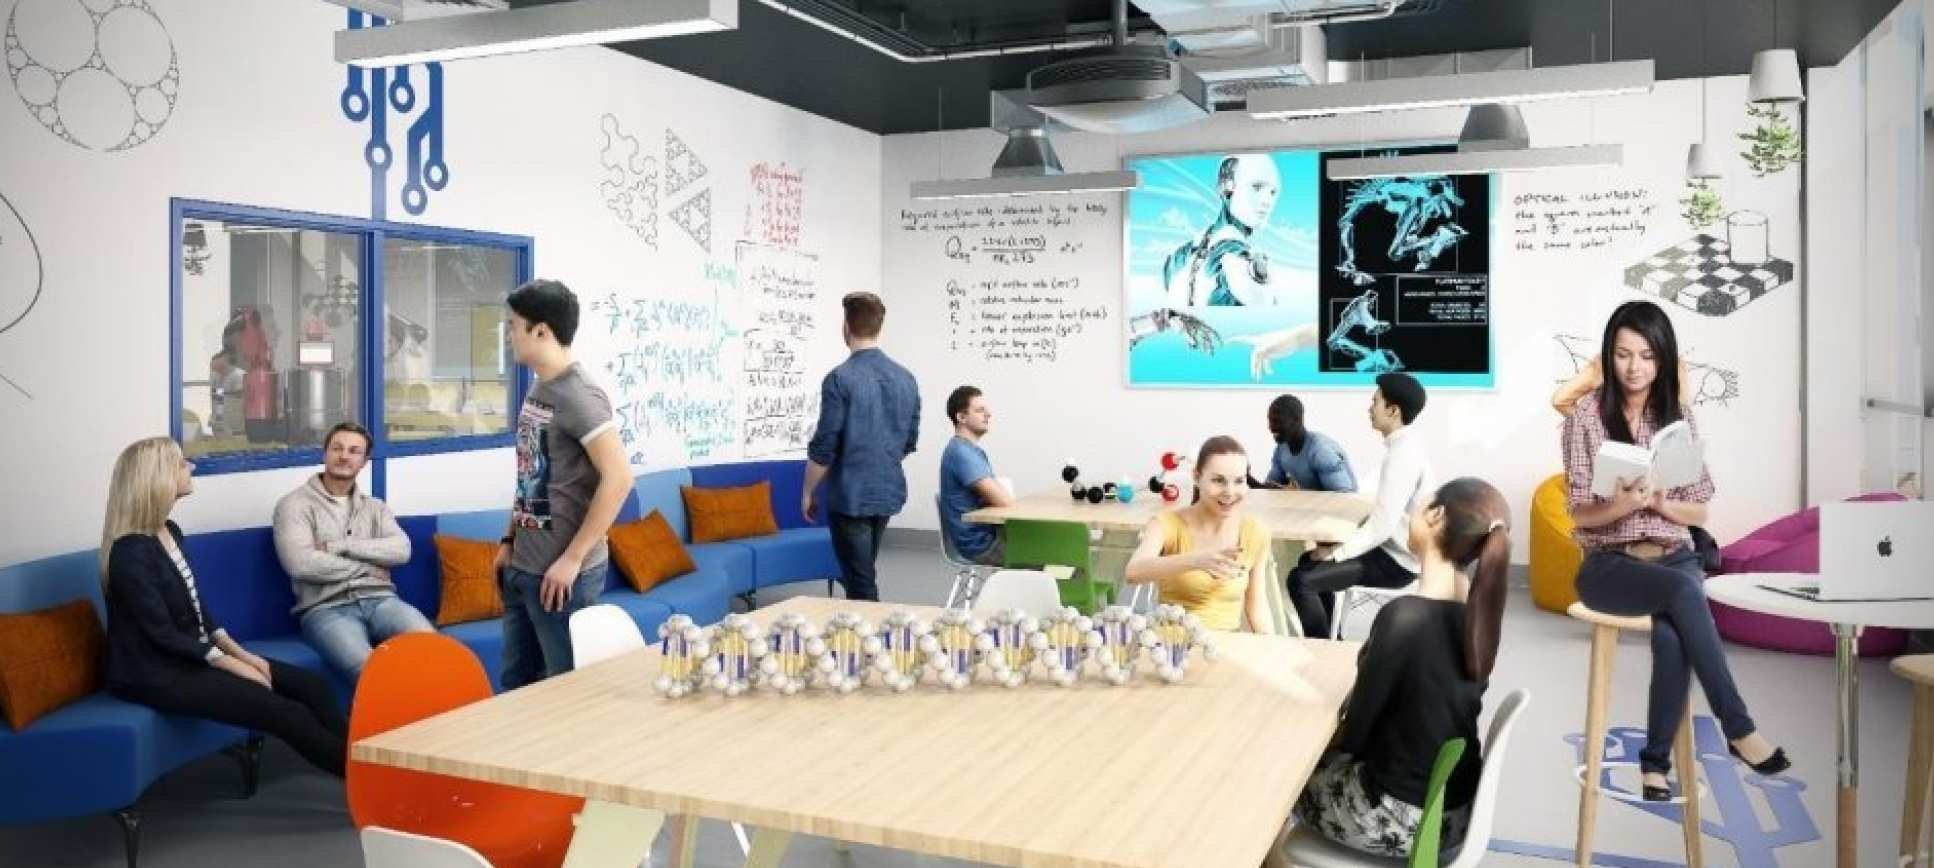 The White City Invention Rooms Design Studio. Image via Imperial College London.